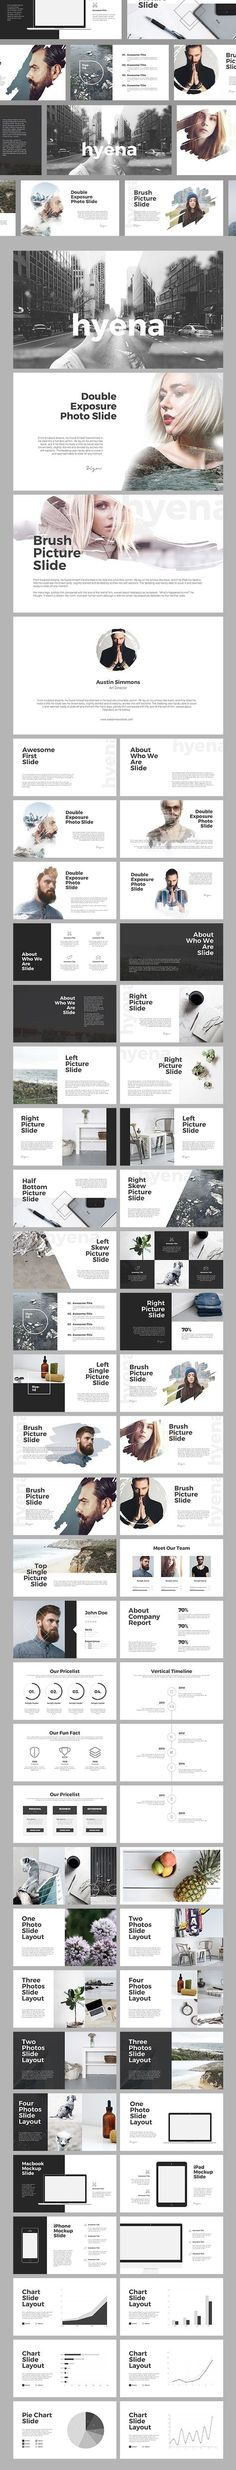 HYENA - Powerpoint Template • Download ↓ https://graphicriver.net/item/hyena-powerpoint-template/16928588?ref=pxcr